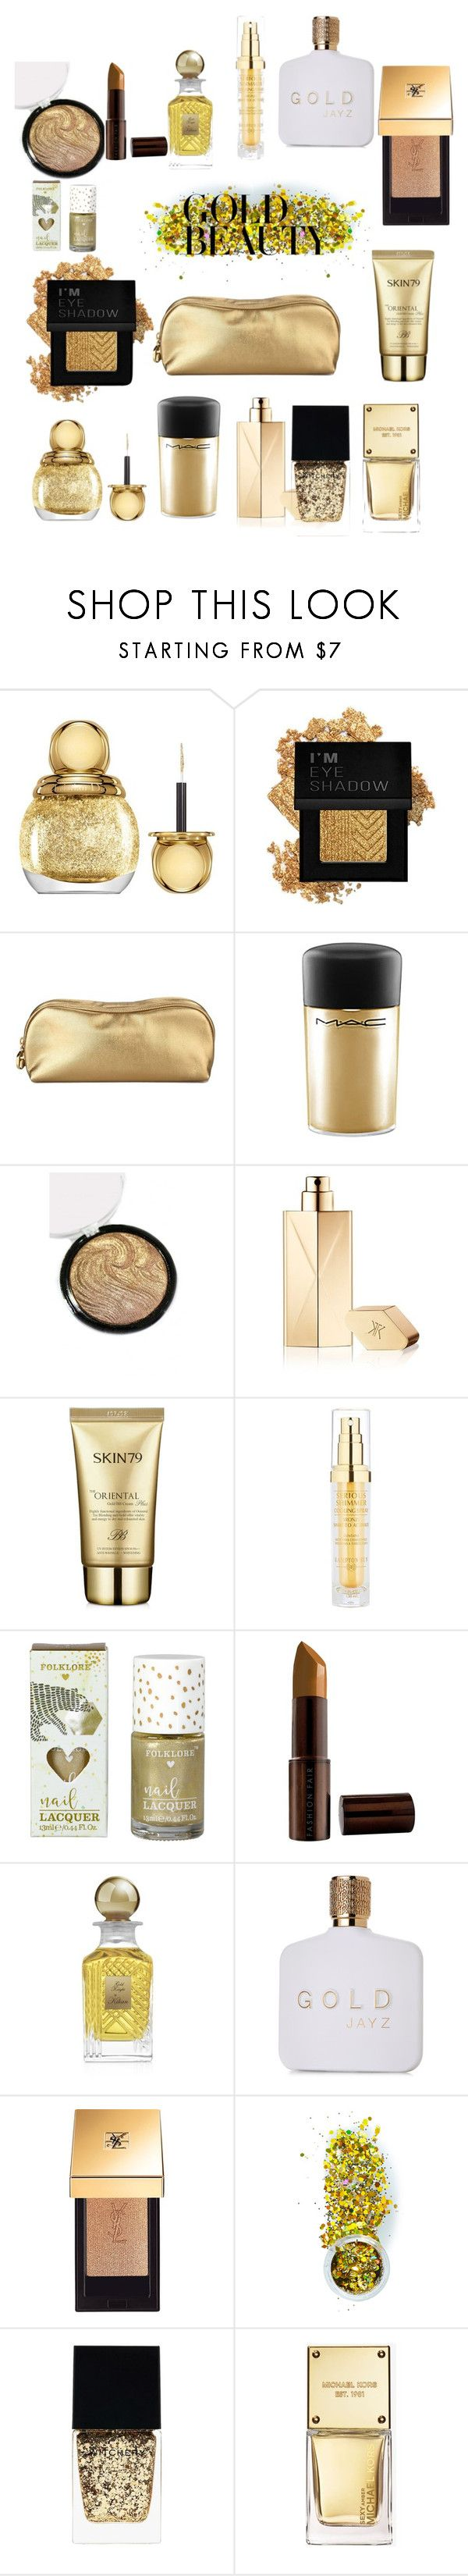 """Gold theme Makeup bag! #677"" by earthelglowing on Polyvore featuring Christian Dior, Forever 21, Rodo, MAC Cosmetics, Maison Francis Kurkdjian, Skin79, Hampton Sun, Fashion Fair, Kilian and Yves Saint Laurent"